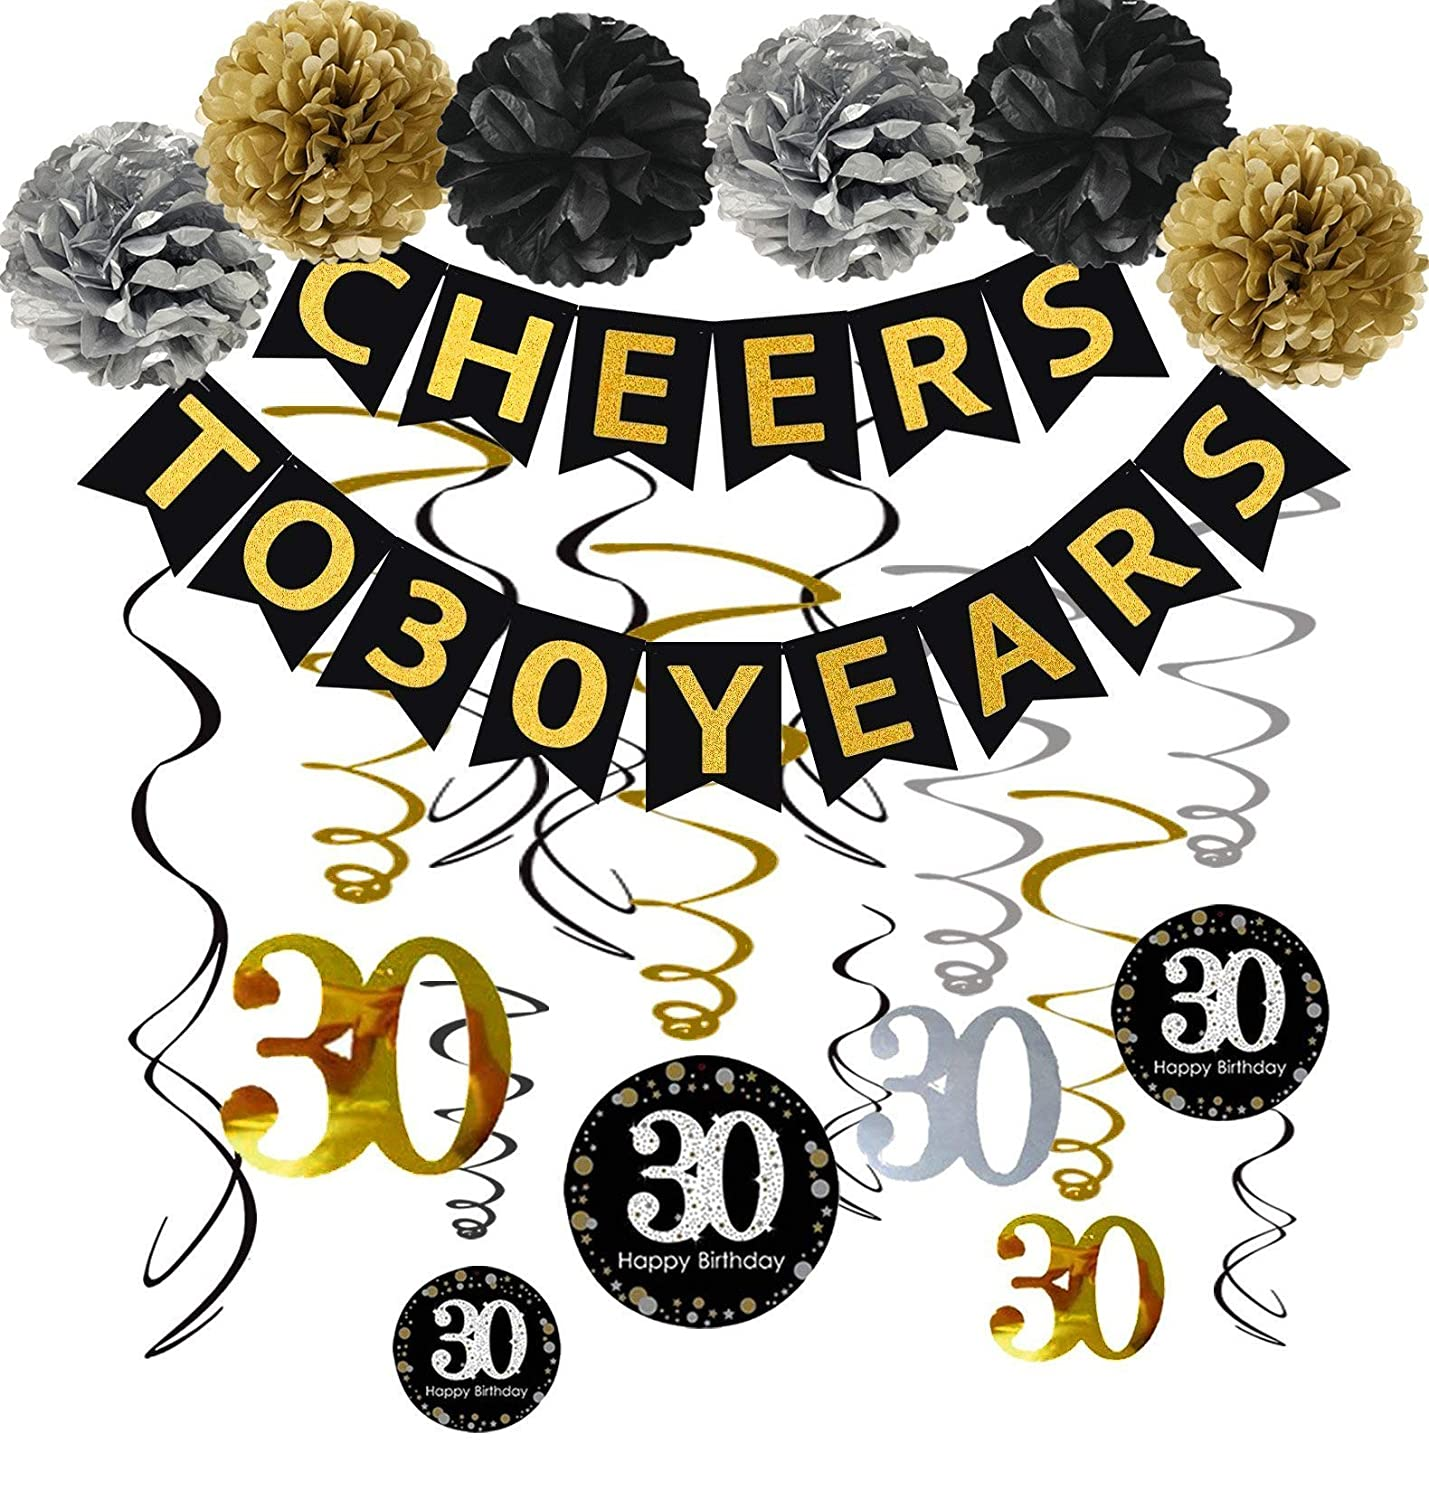 30th Birthday Party Decorations Kit Cheers To 30 Years Banner Poms Sparkling Celebration 30 Hanging Swirls For 30 Years Old Party Supplies 30th